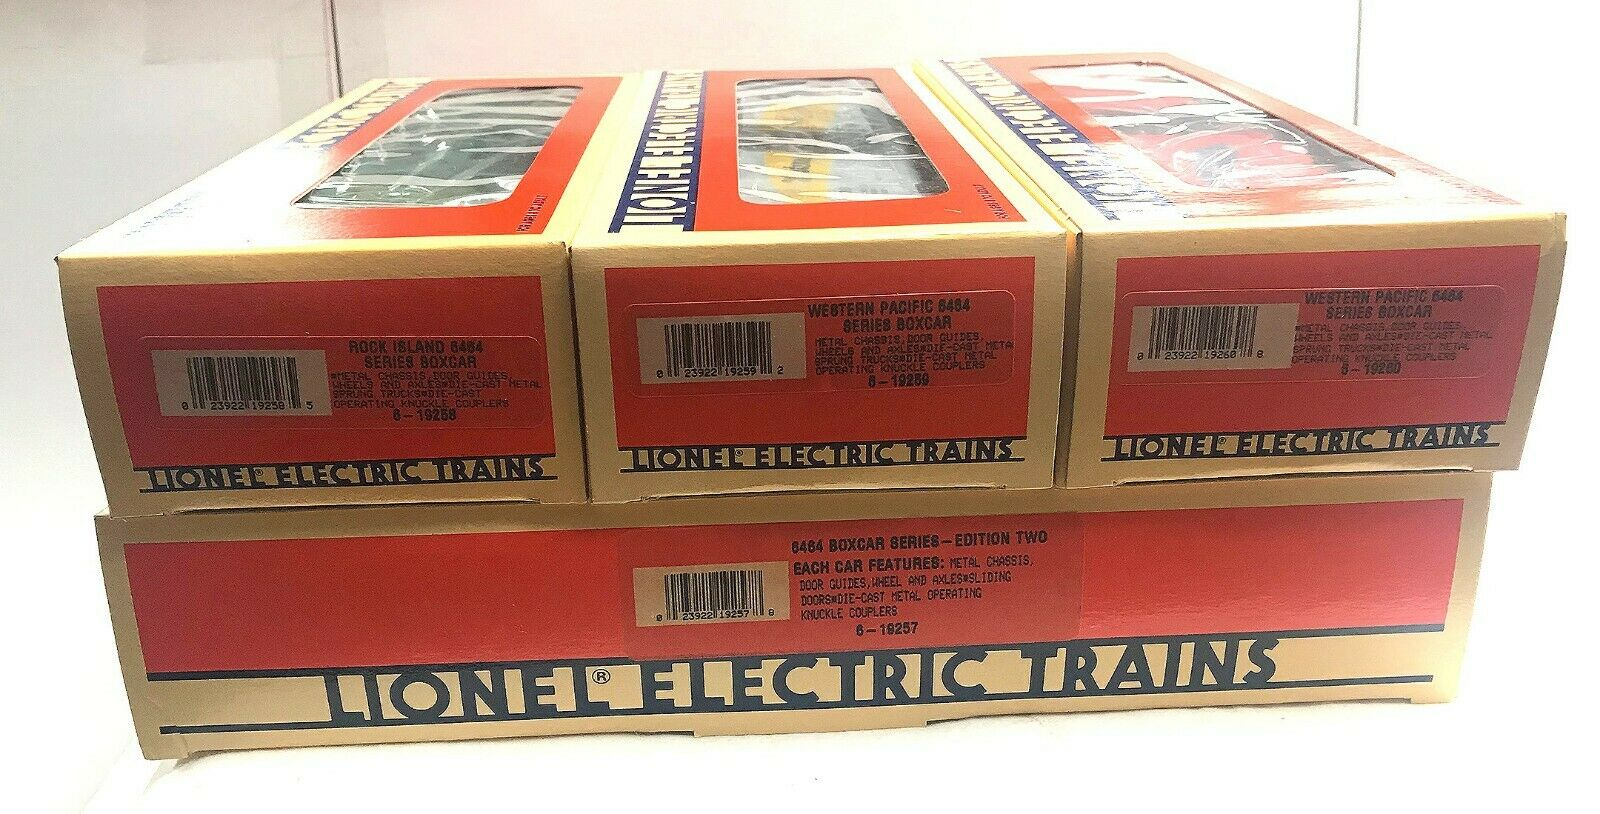 Lionel boxcar series edition two  w orig. boxed C10 109115